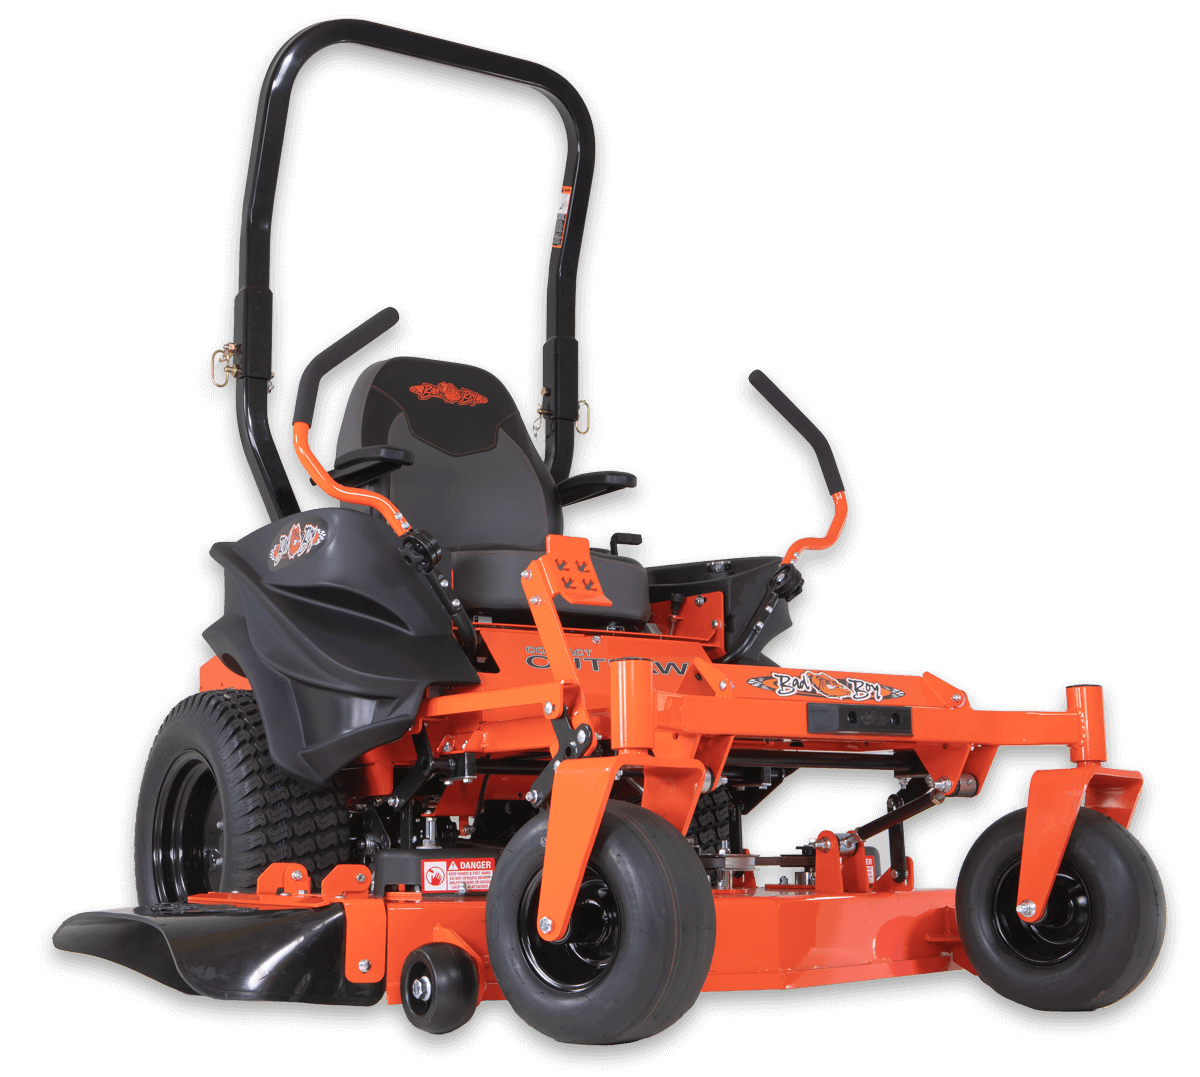 Zeroturn Mower Png - Zero Turn Commercial Lawn Mowers, EZ Ride System - Bad Boy Mowers